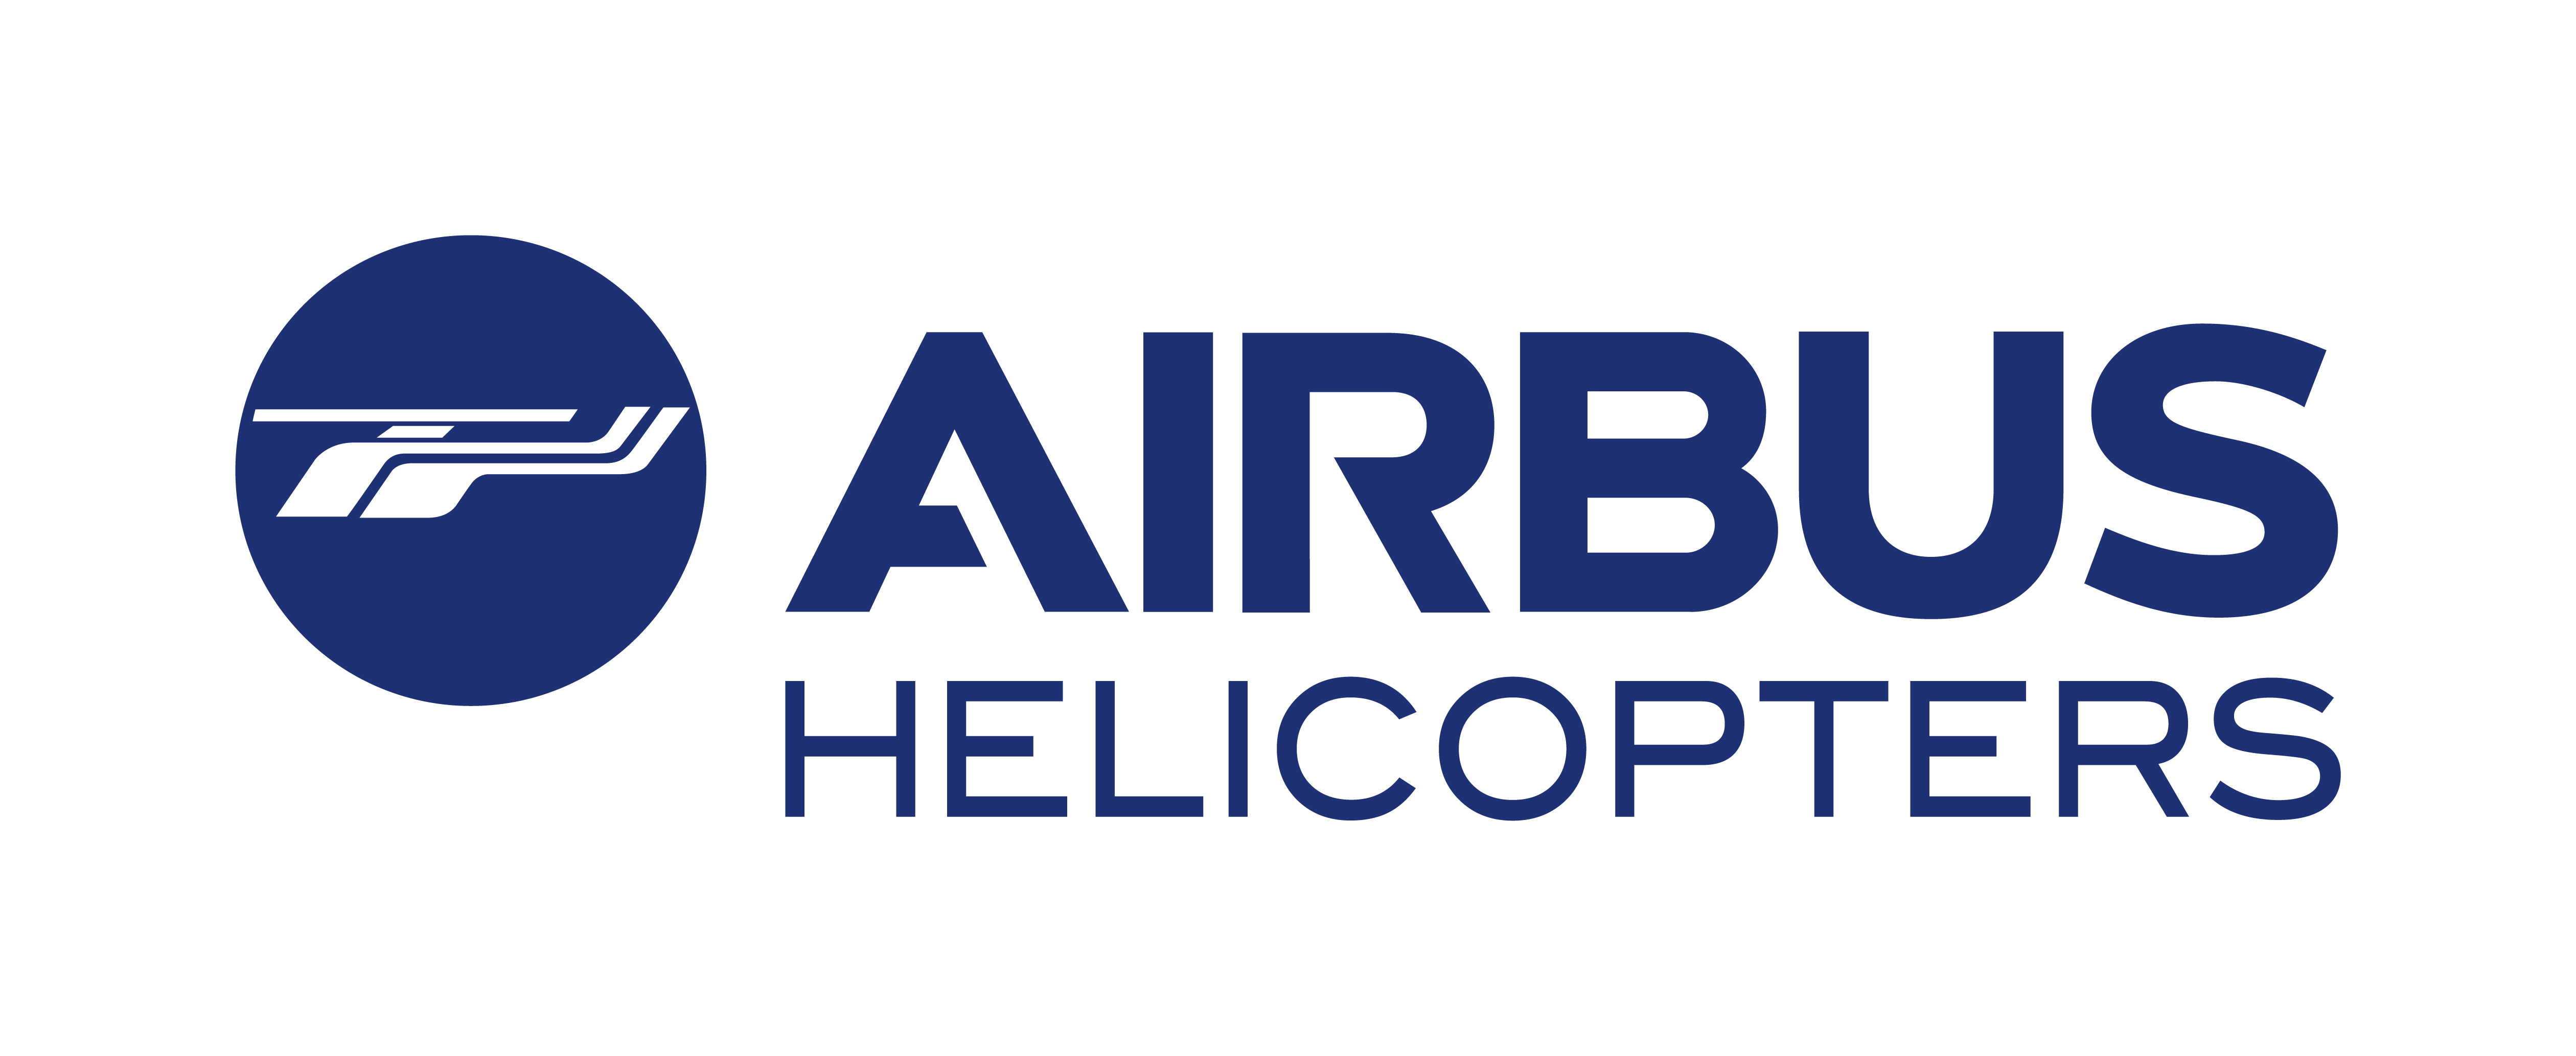 Helicopter logo png. Airbus helicopters logos download